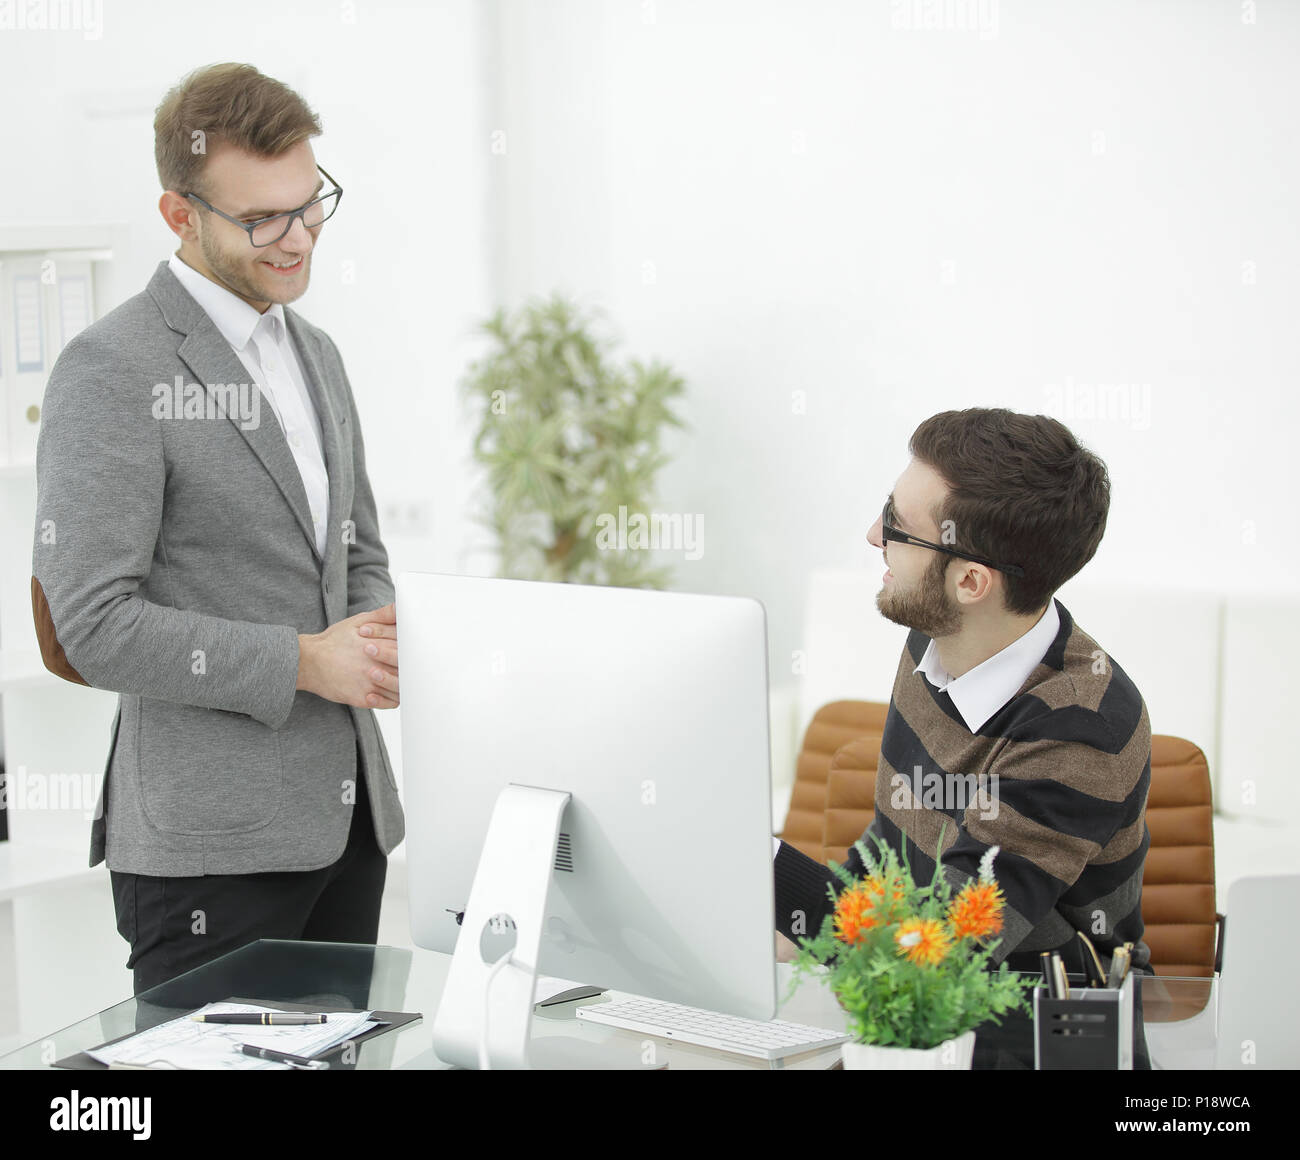 Manager talking with an employee in the office. - Stock Image